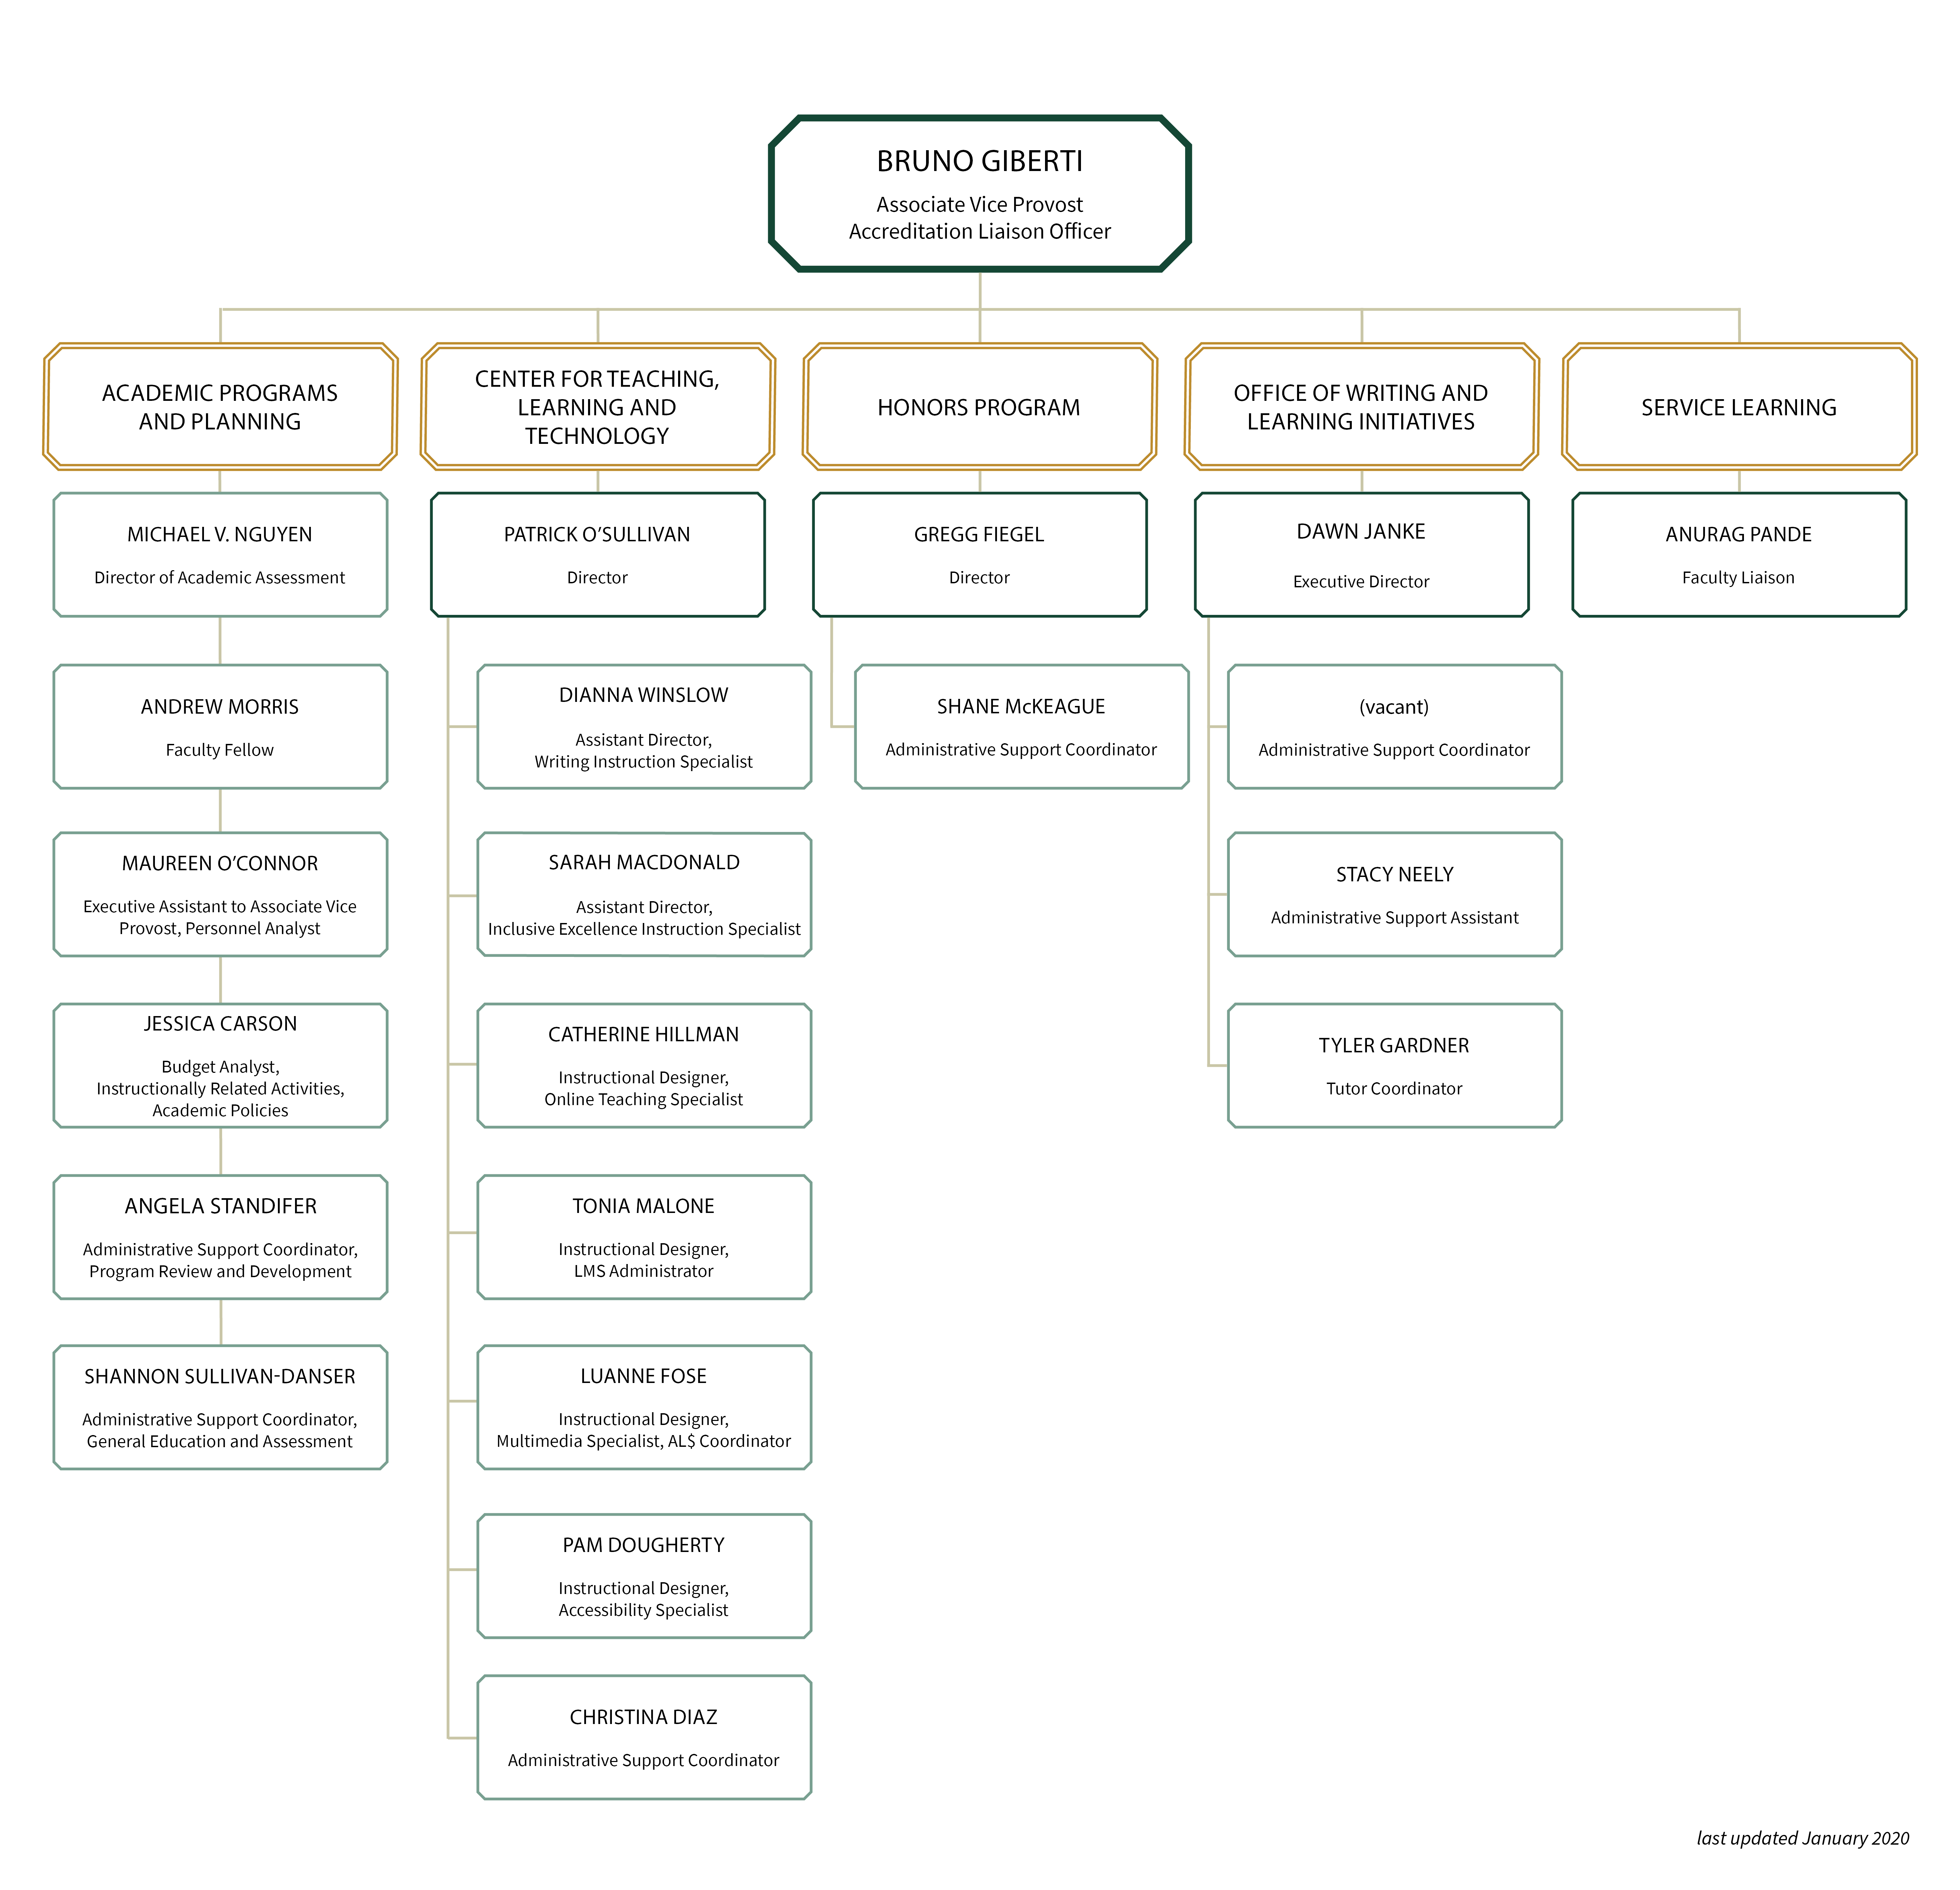 Organizational Chart as of January 2020